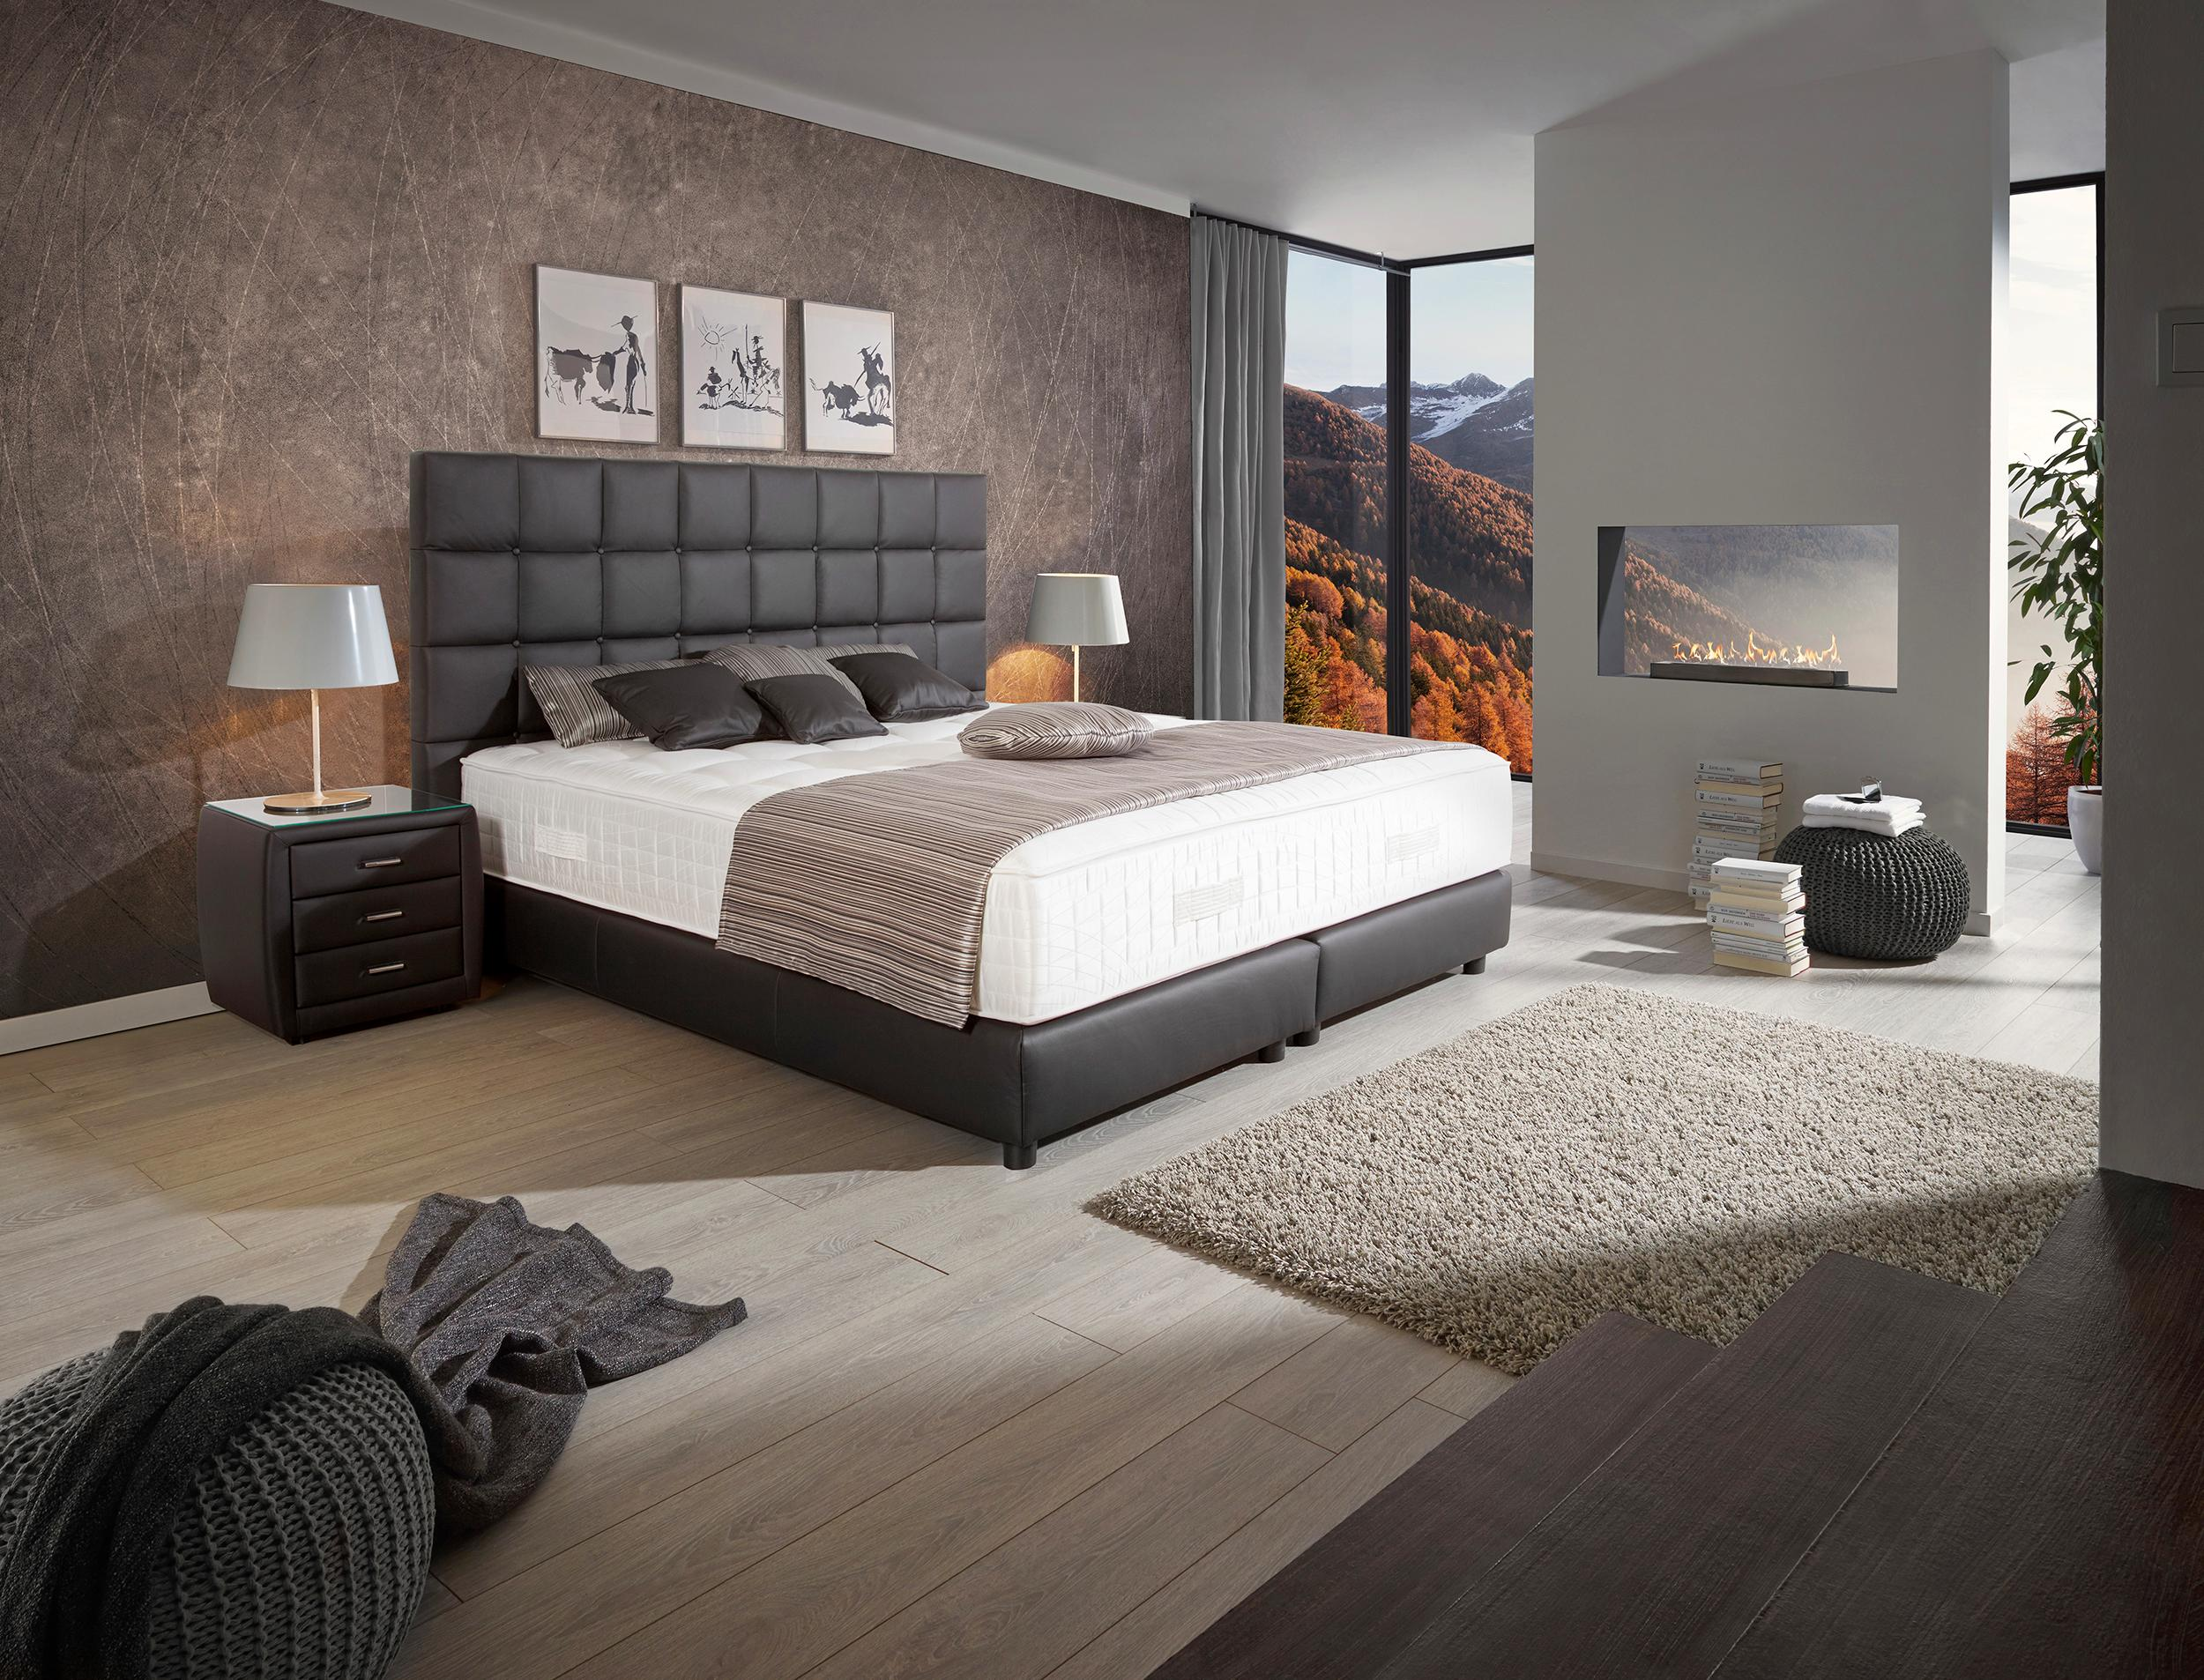 schlafzimmer wandgestaltung lass dich inspirieren. Black Bedroom Furniture Sets. Home Design Ideas